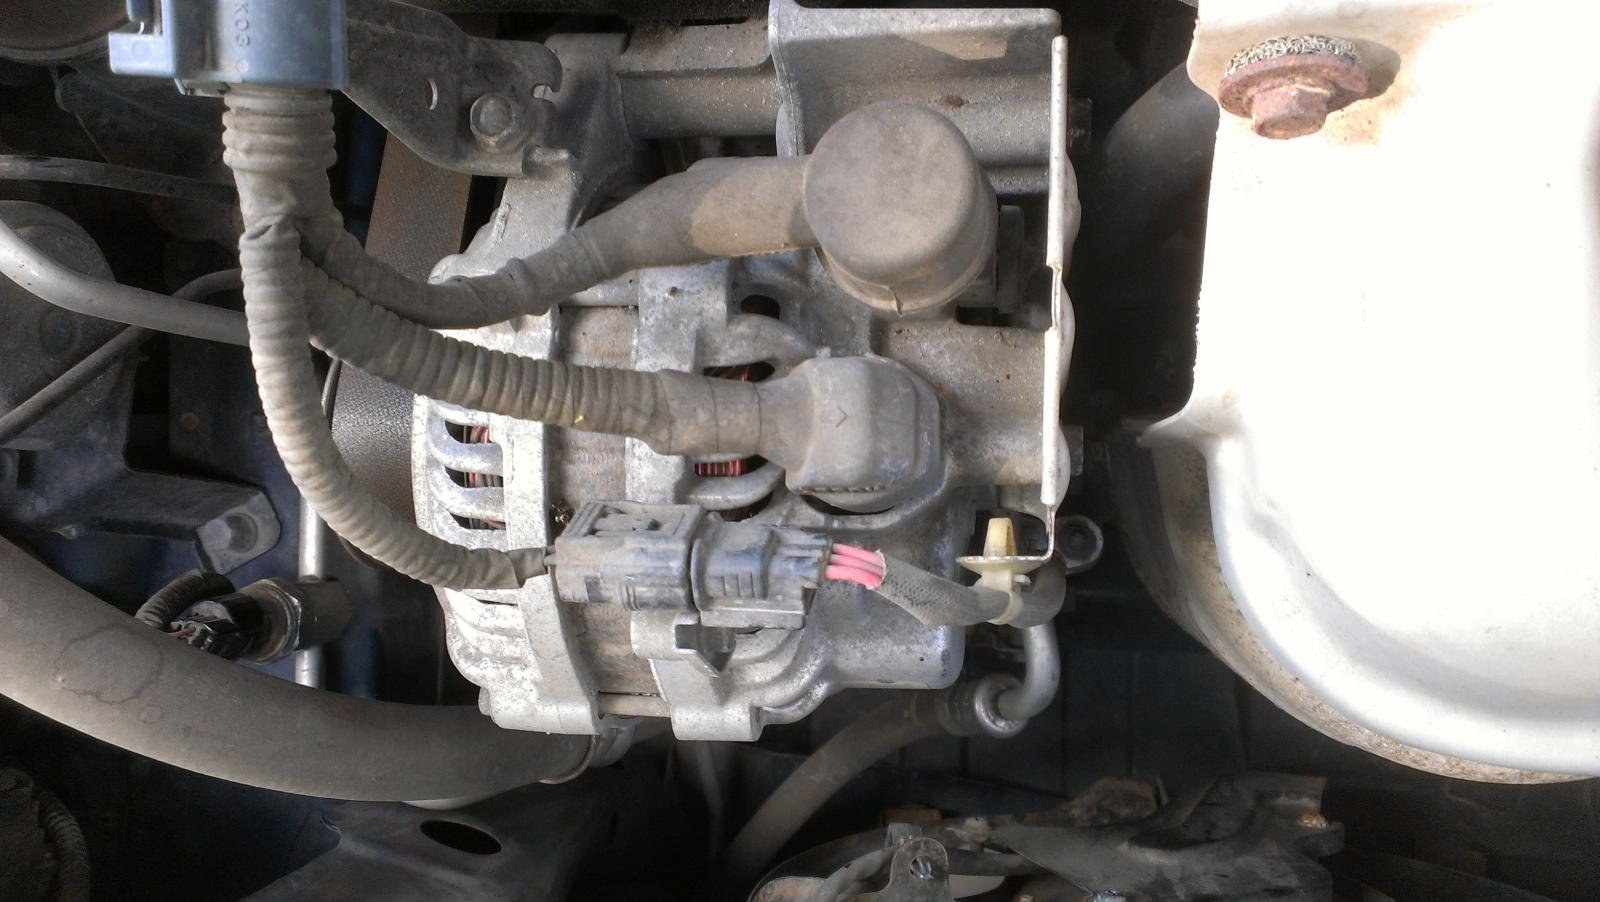 D Civic C Compressor Wont Kick Imag on 2004 Kia Sorento Engine Problems